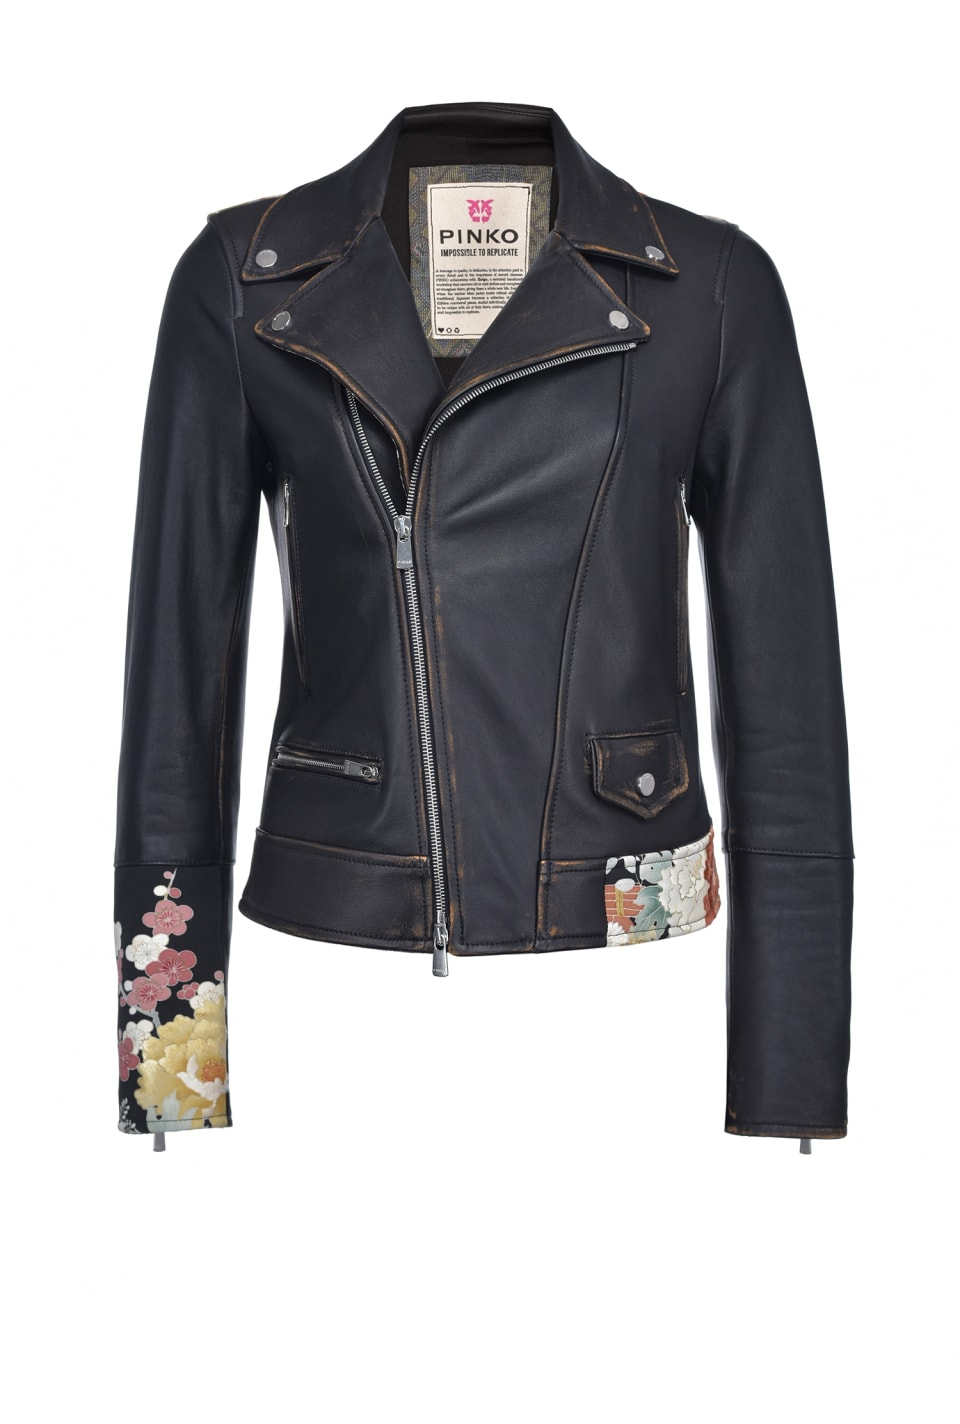 Limited Edition biker jacket in leather and kimono in silk - Pinko